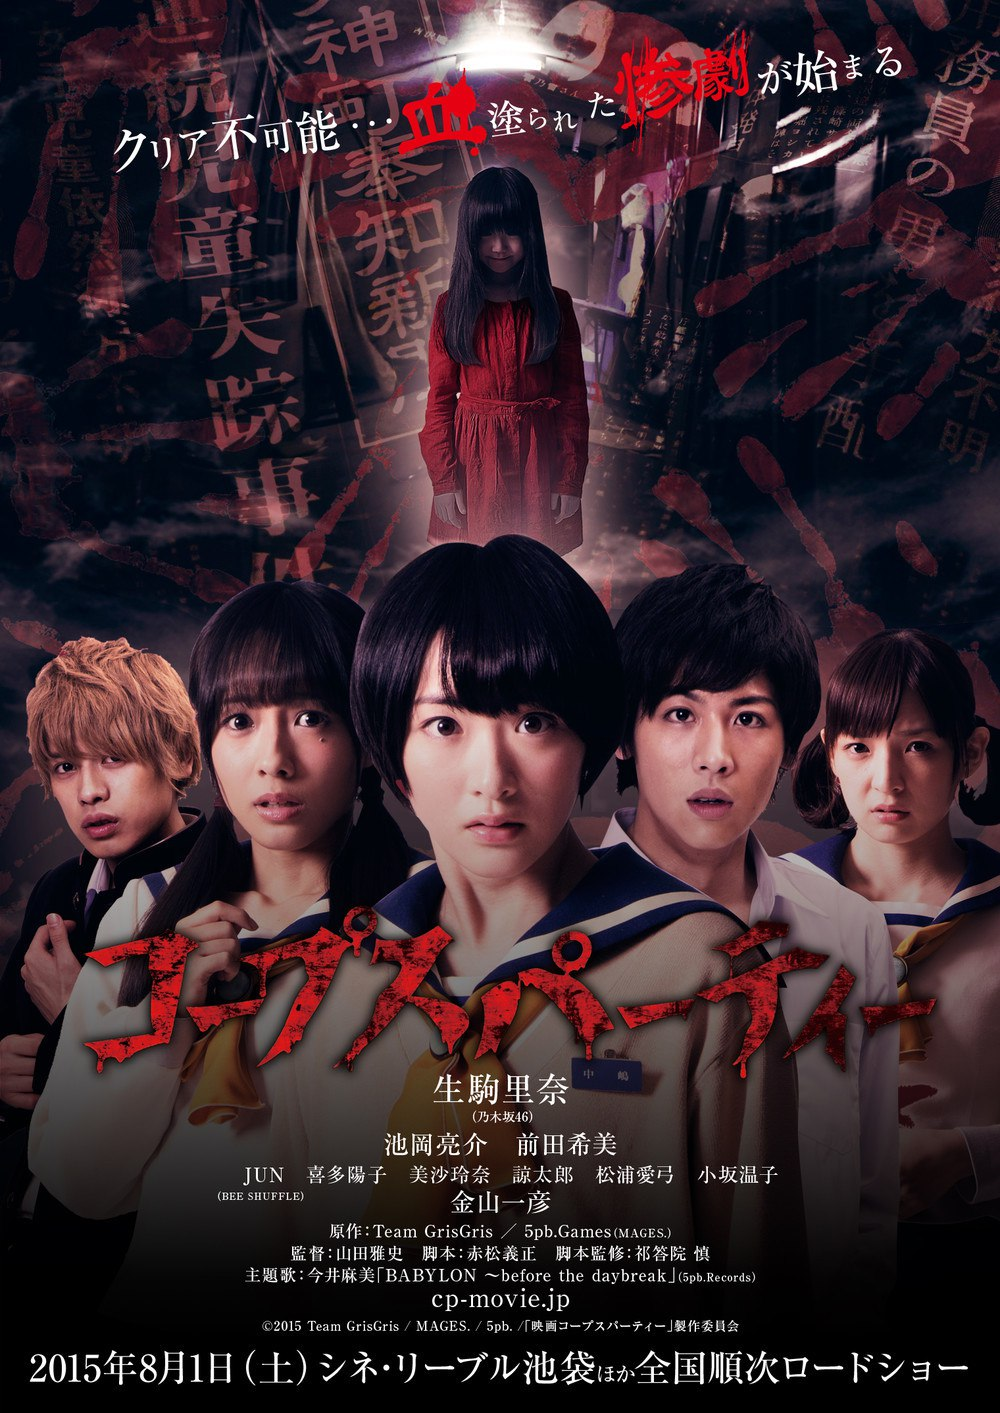 [MOVIE] Live-action Corpse Party Movie to get an uncut version with all the blood and gore